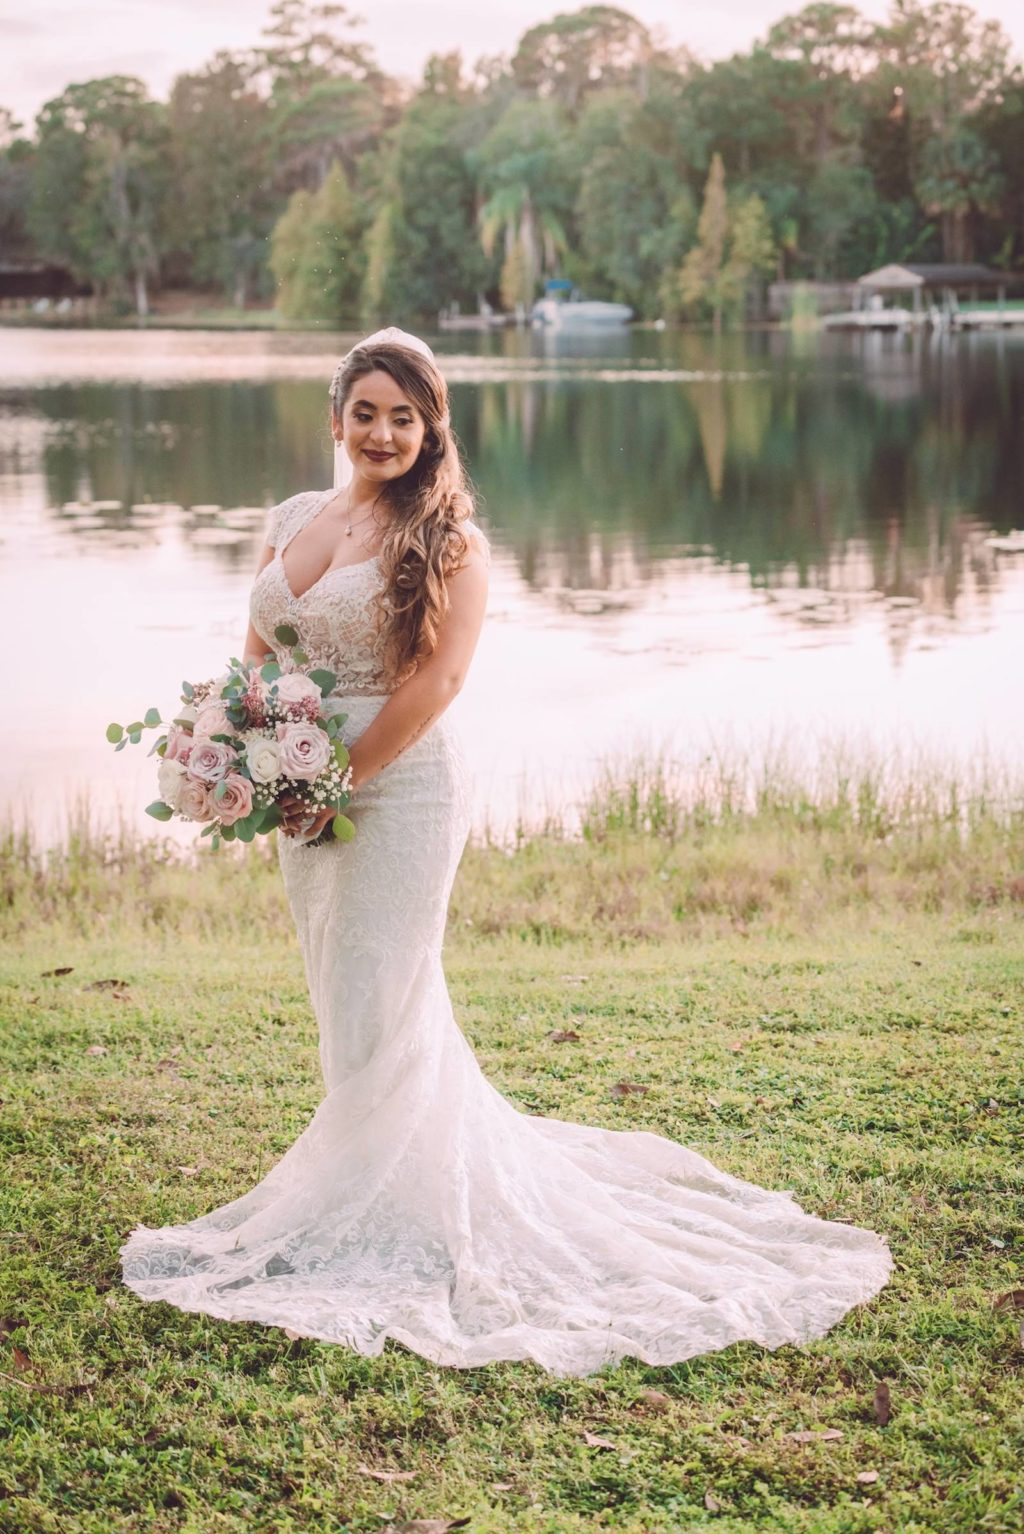 Romantic Bride Standing in Front of Lake Wearing Lace Cap Sleeve V Neckline Nude Bodice and White Skirt Wedding Dress Holding Blush Pink, Ivory and Mauve Roses with Eucalyptus Greenery Leaves Floral Bouquet   Tampa Bay Wedding Photographer Bonnie Newman Creative   Wedding Dress Shop Truly Forever Bridal